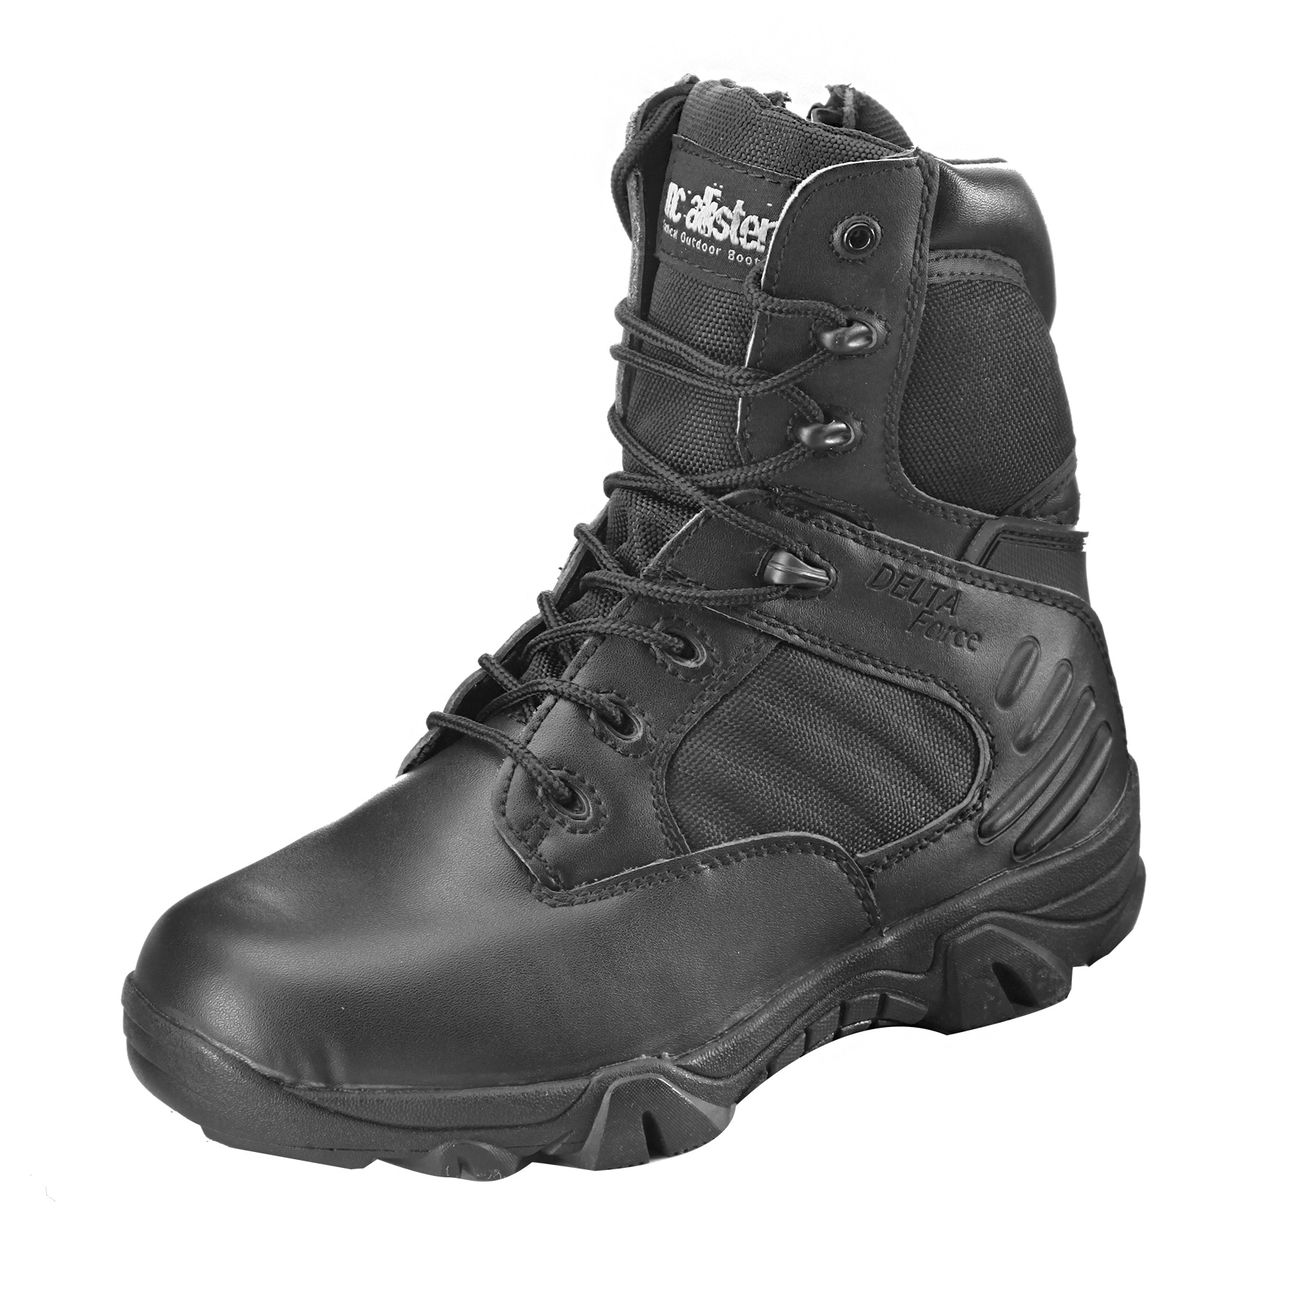 McAllister Stiefel Delta Force Tactical Outdoor Boots schwarz 6